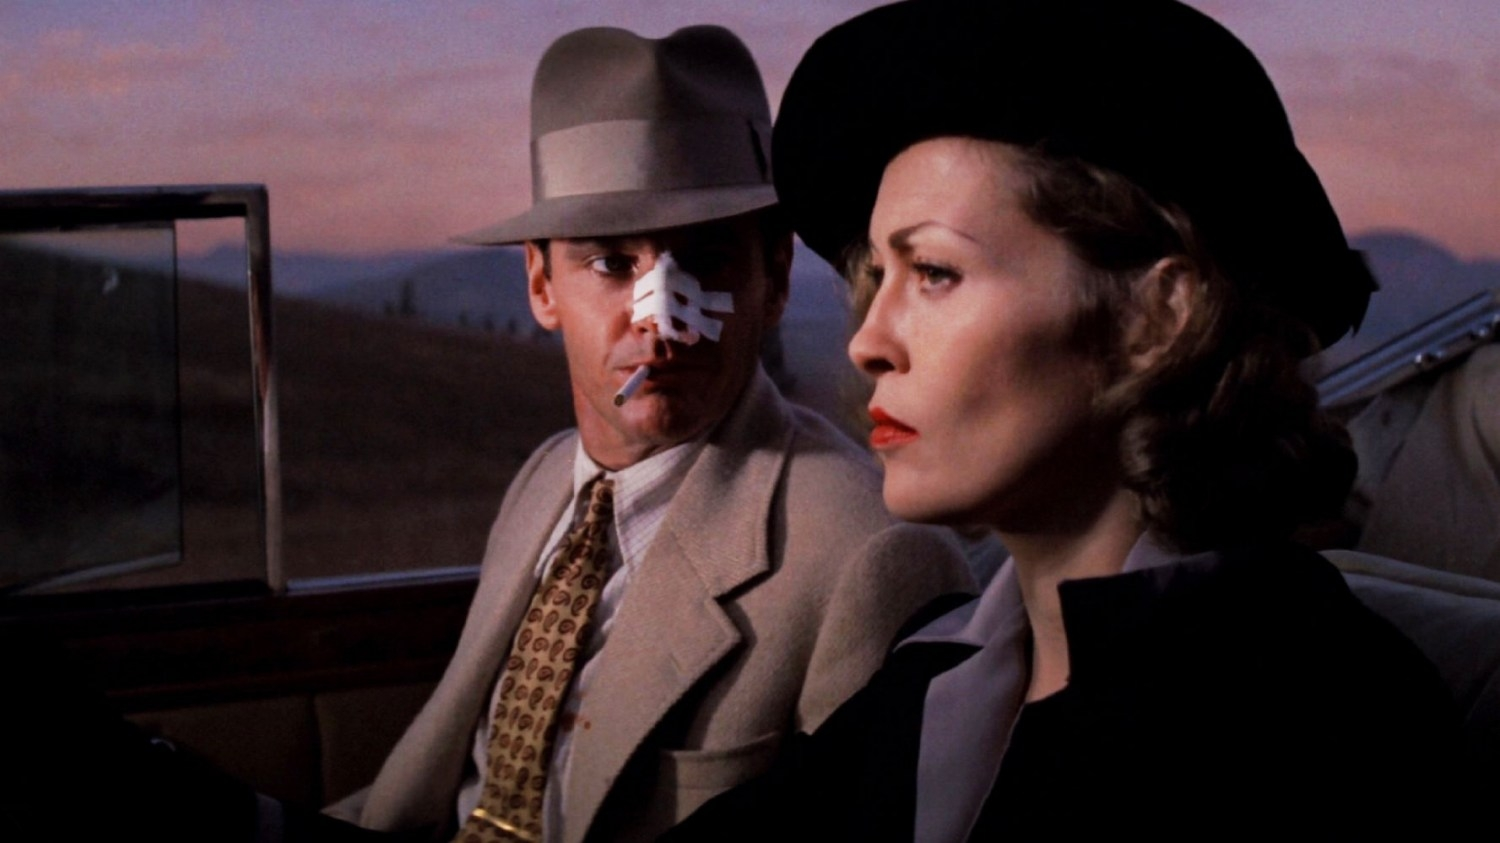 Jack Nicholson and Faye Dunaway in Chinatown (1974)